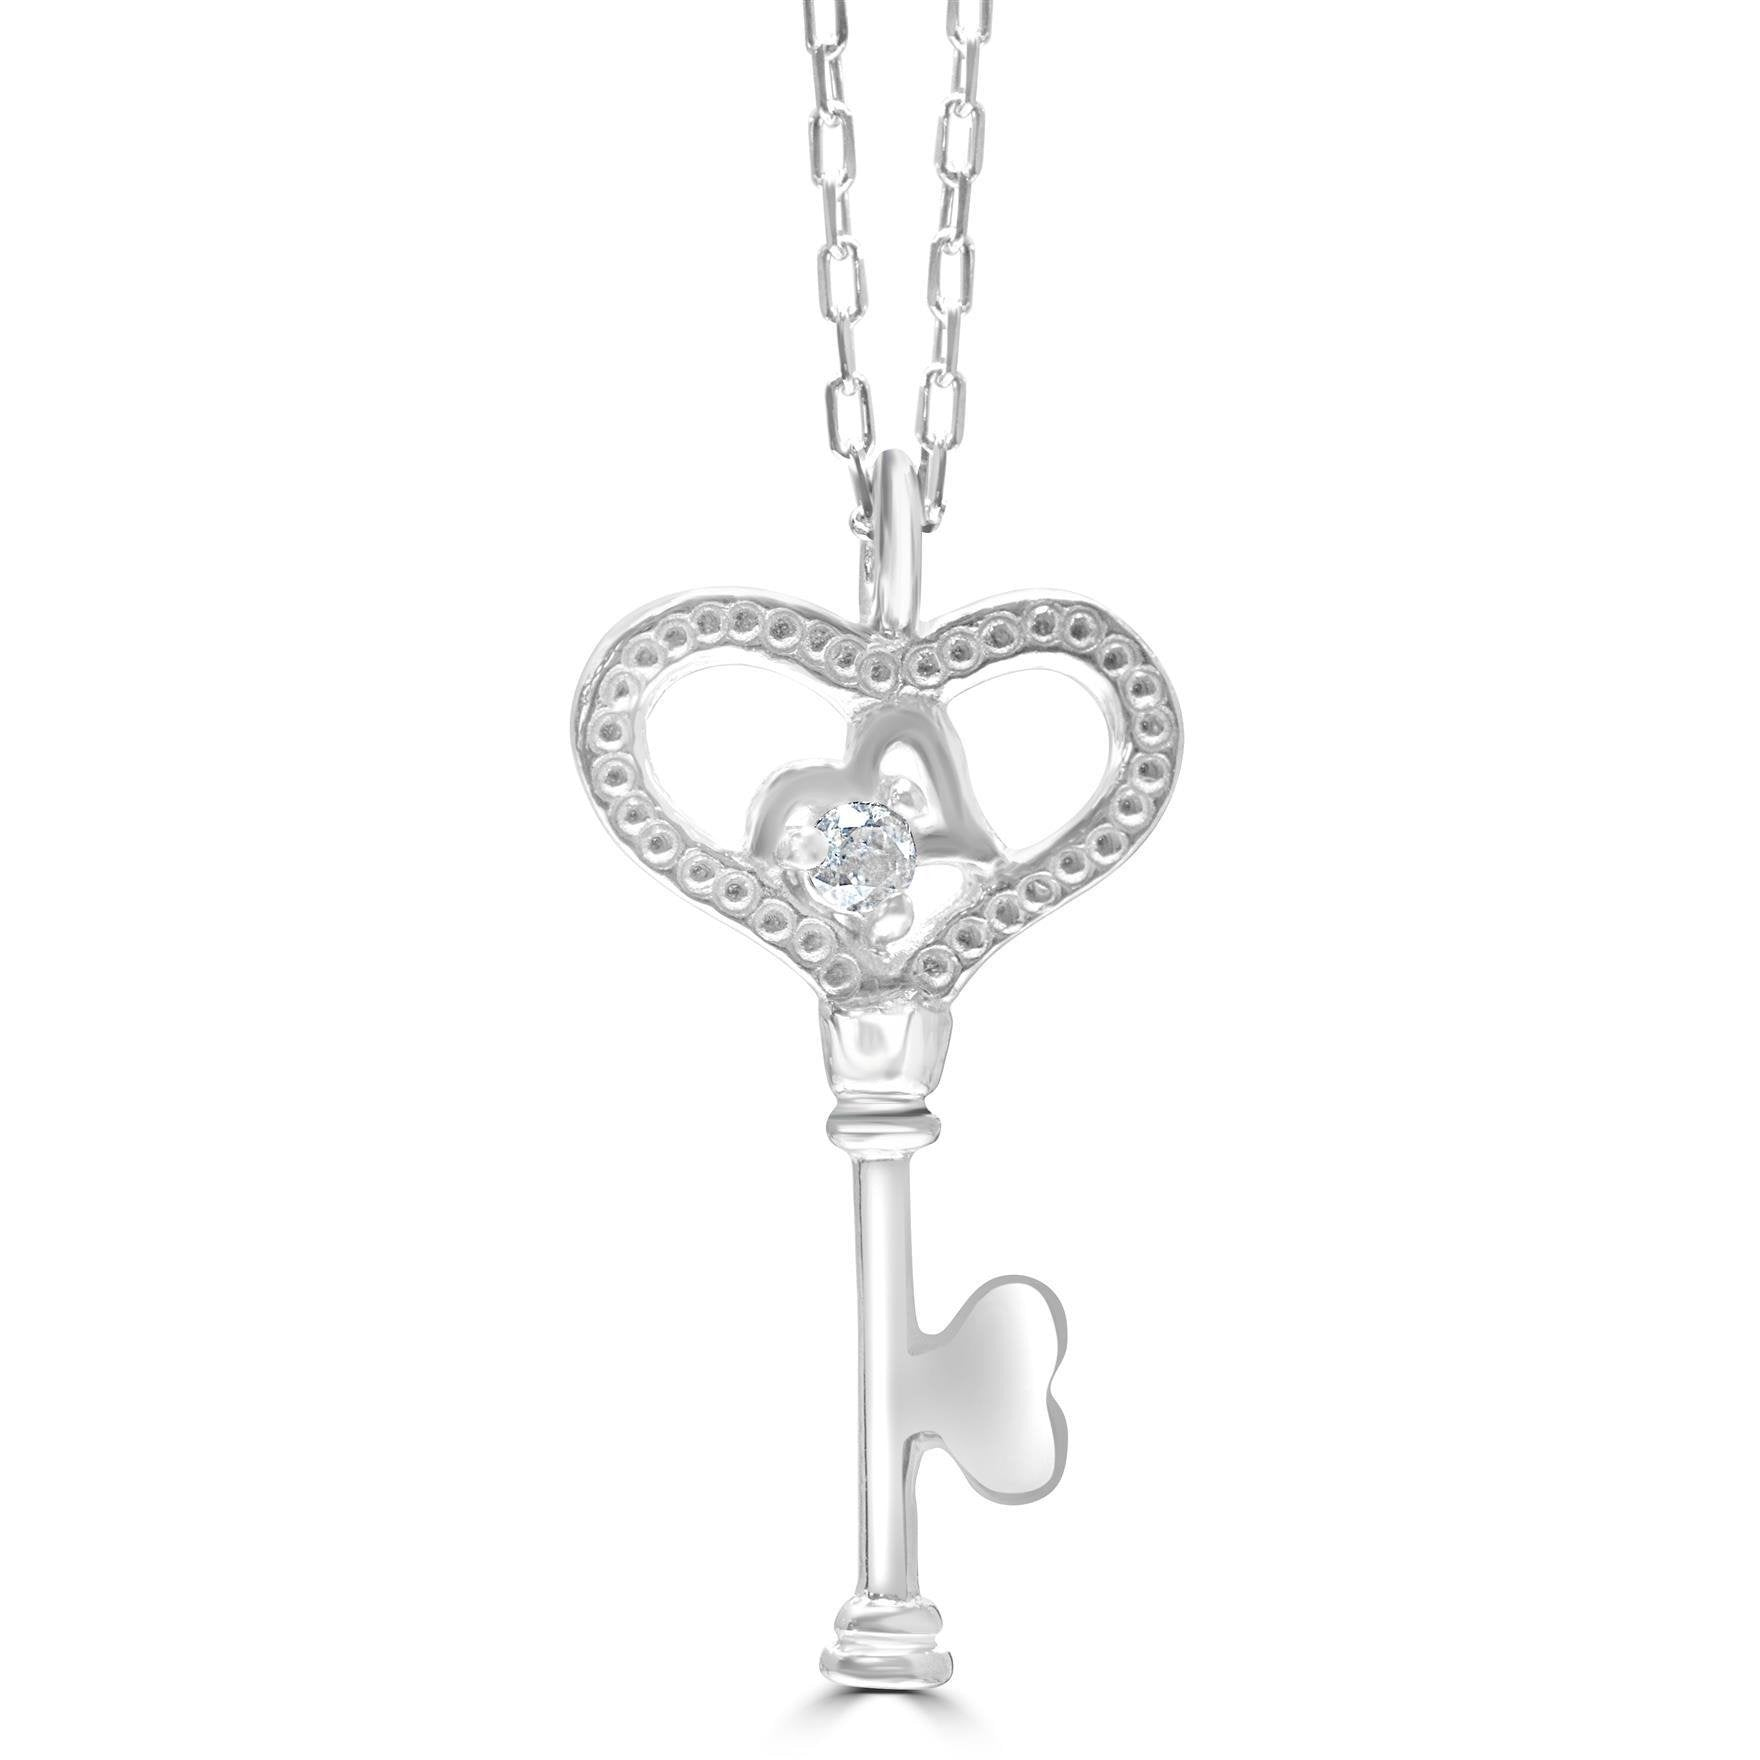 Key to the Door White Gold Pendant with diamond accents